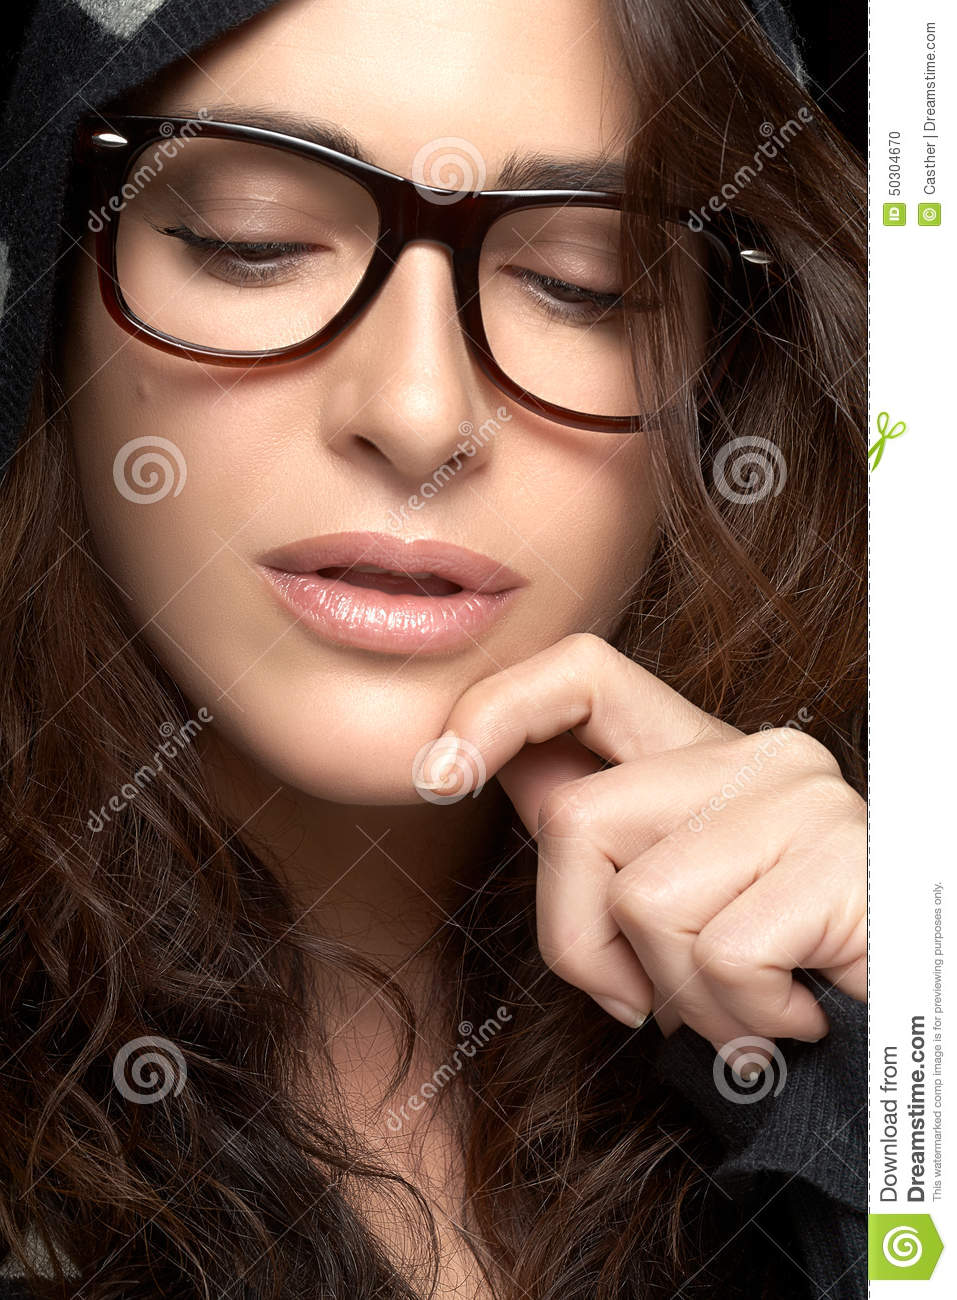 trendy eyewear hufo  Close up Pretty Woman Face with Glasses Cool Trendy Eyewear